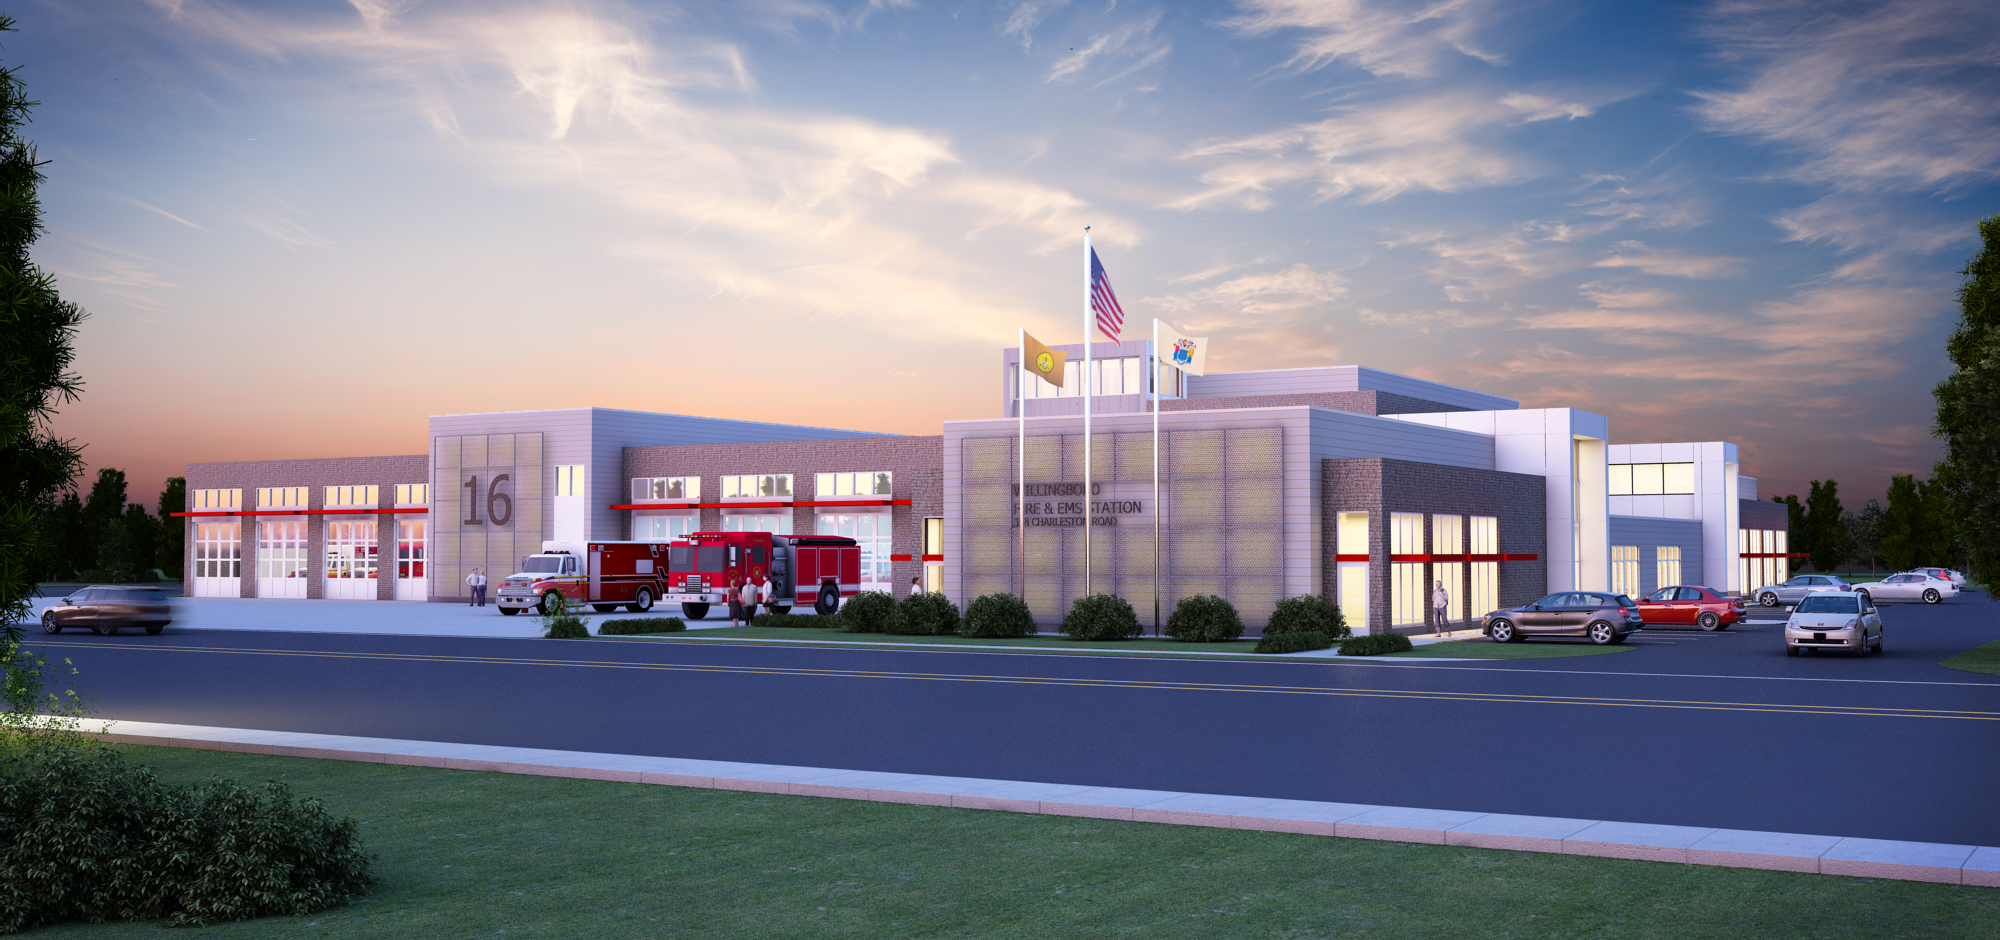 Willingboro Fire and EMS Headquarters Building  LeMay